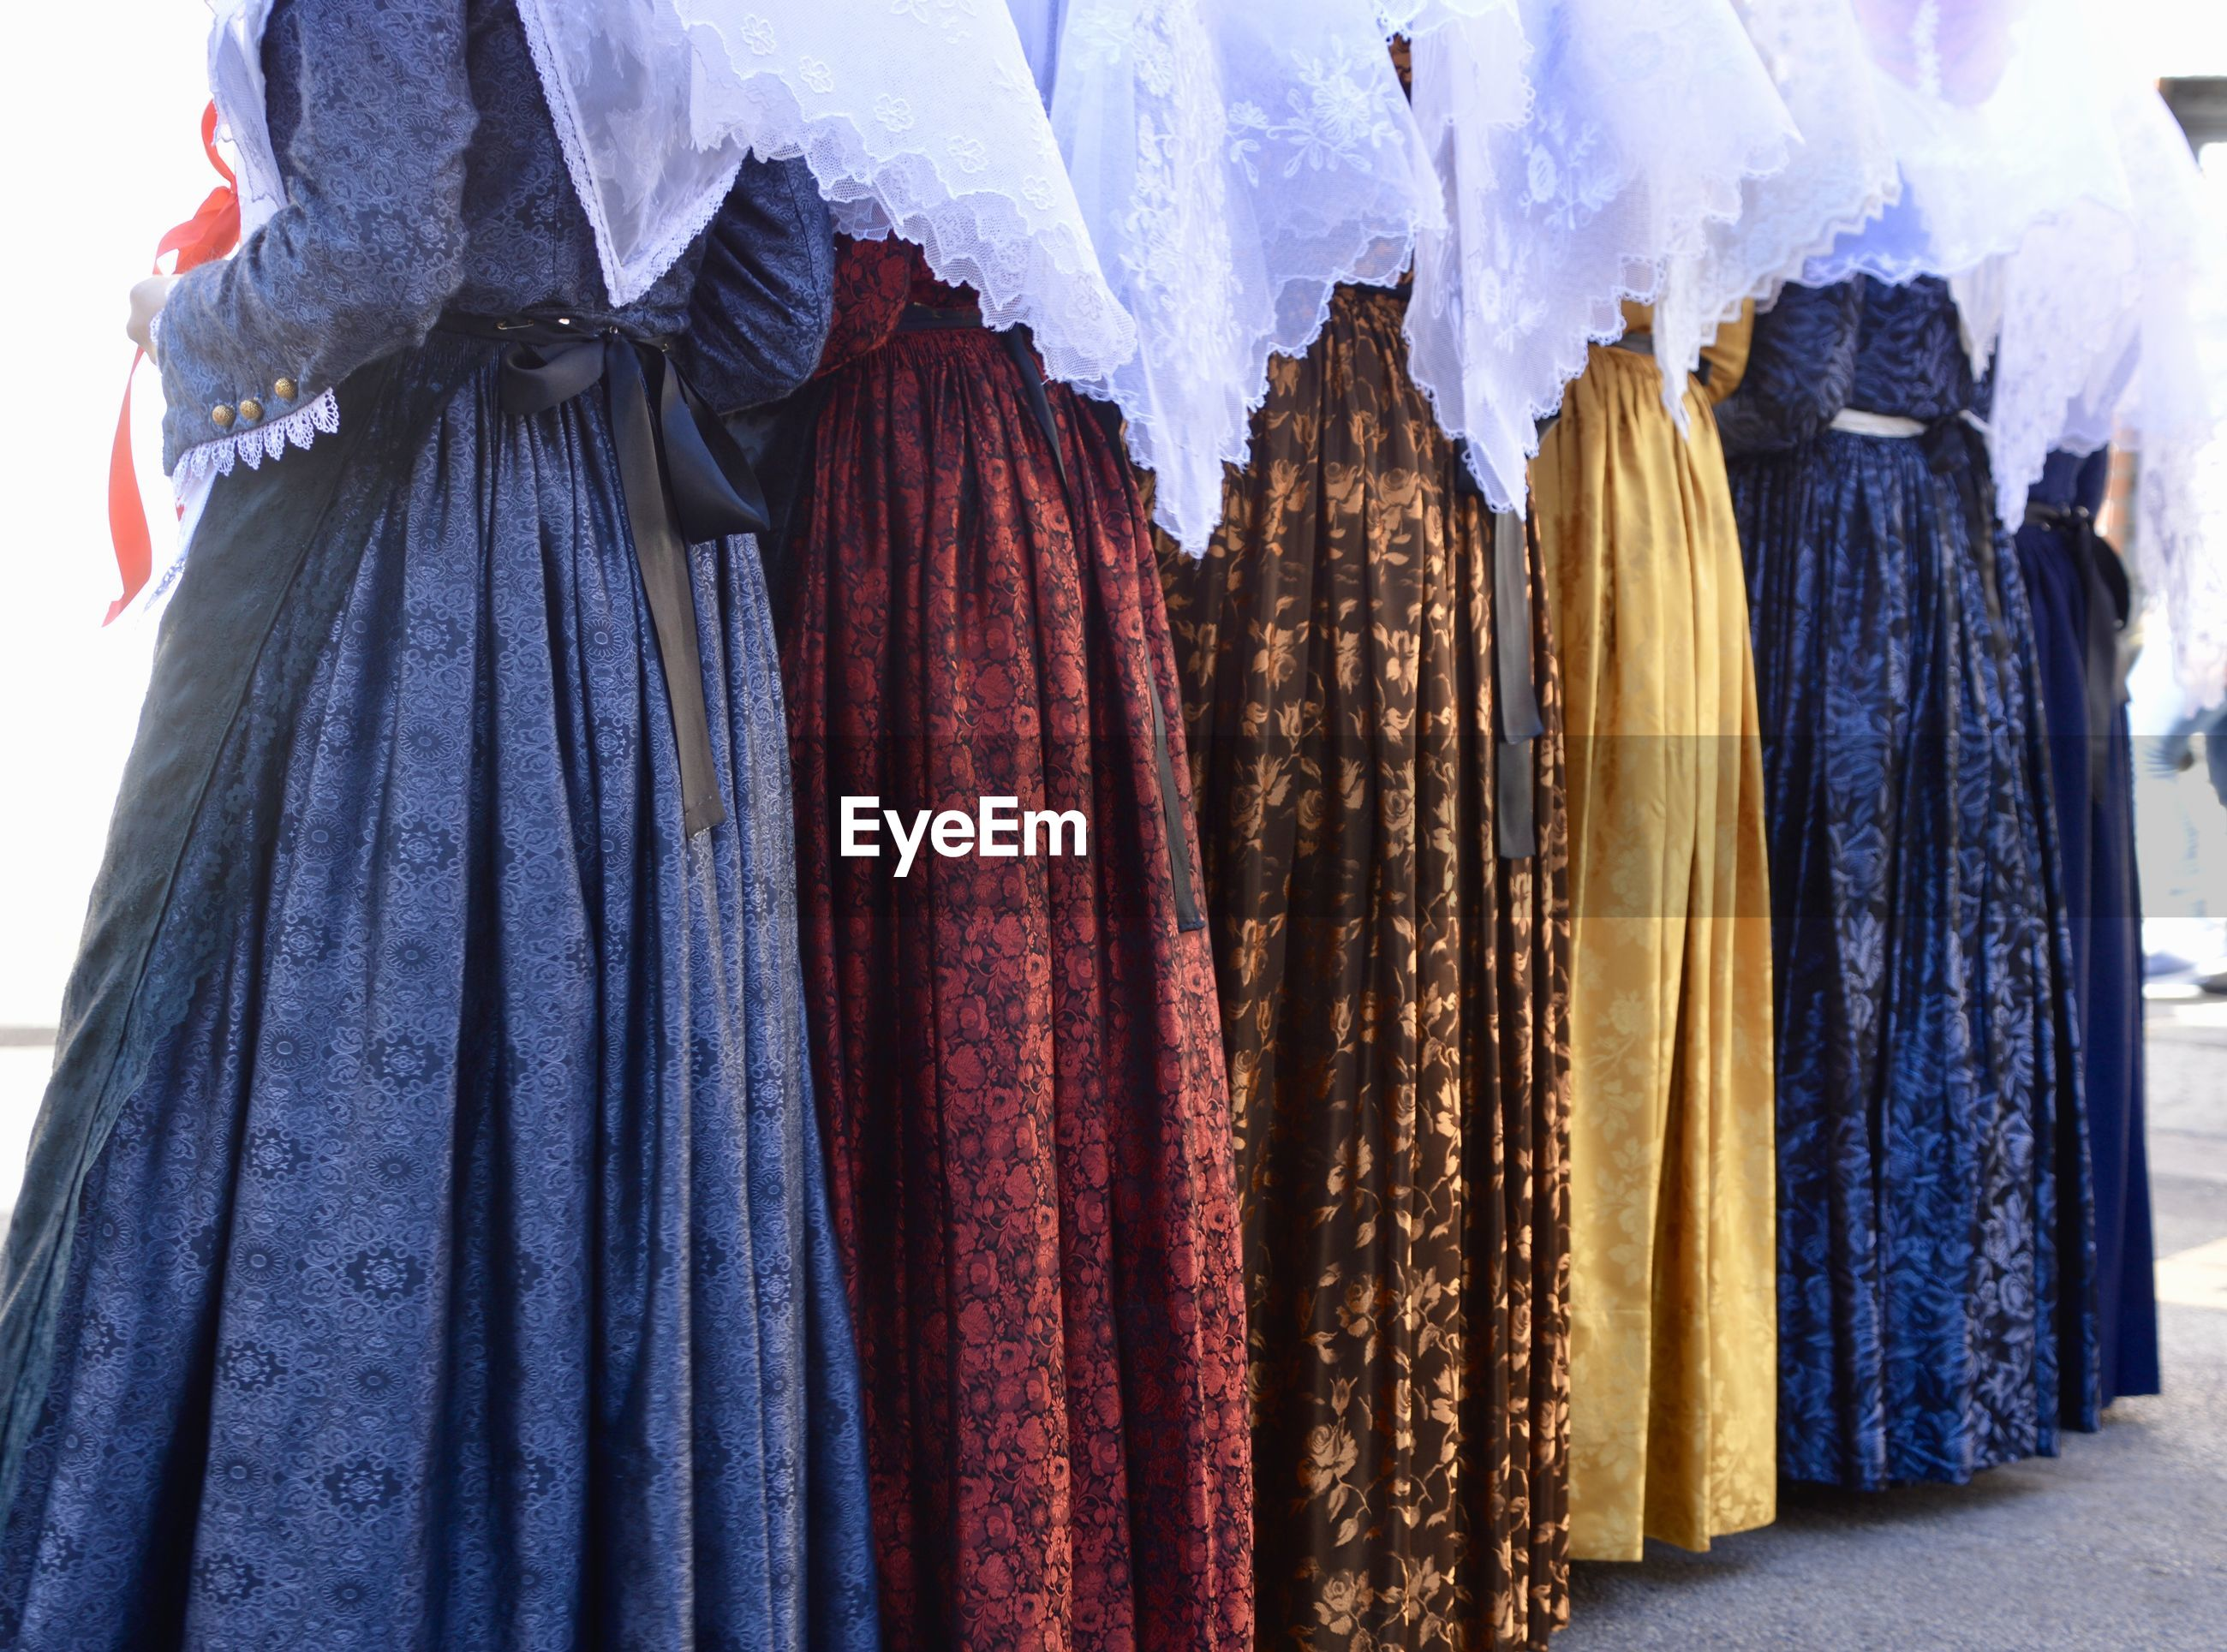 Colorful gowns for sale